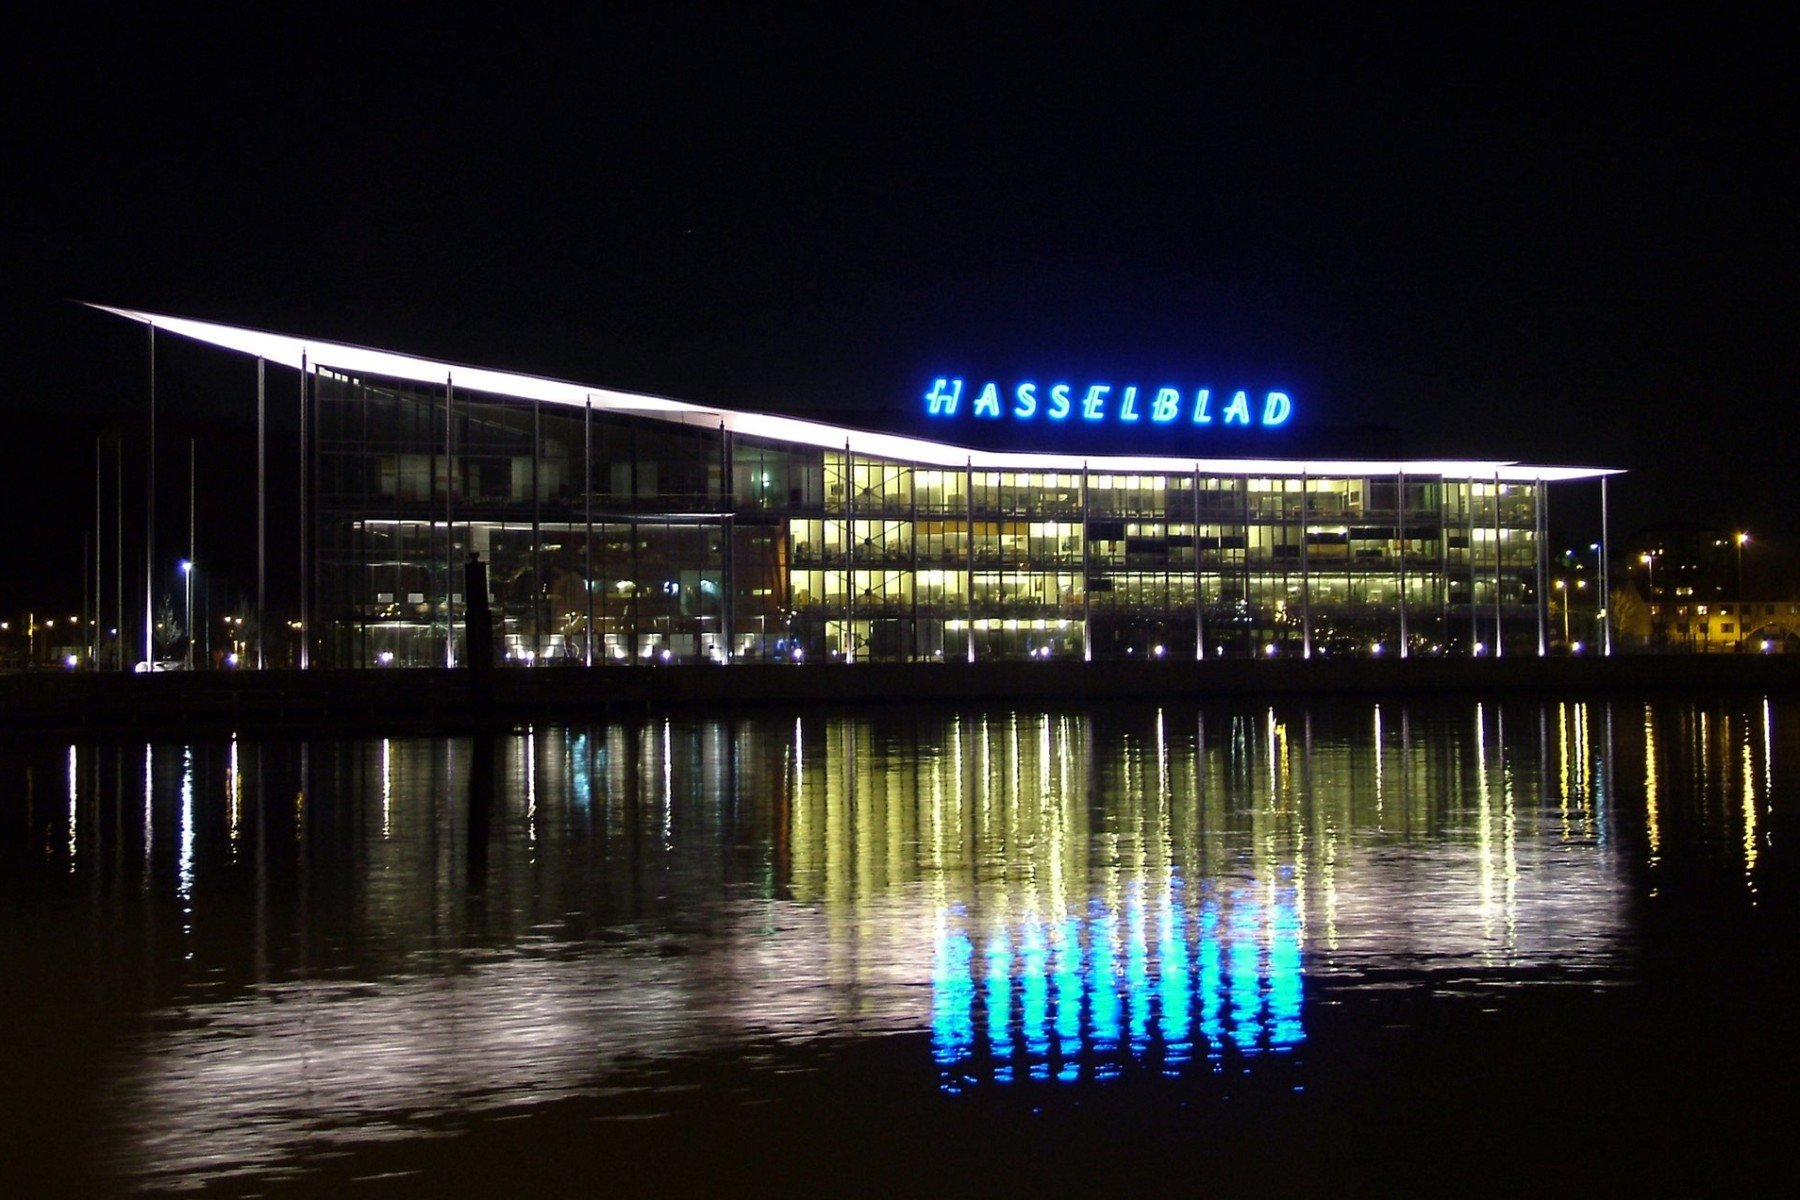 Hasselblad headquarter